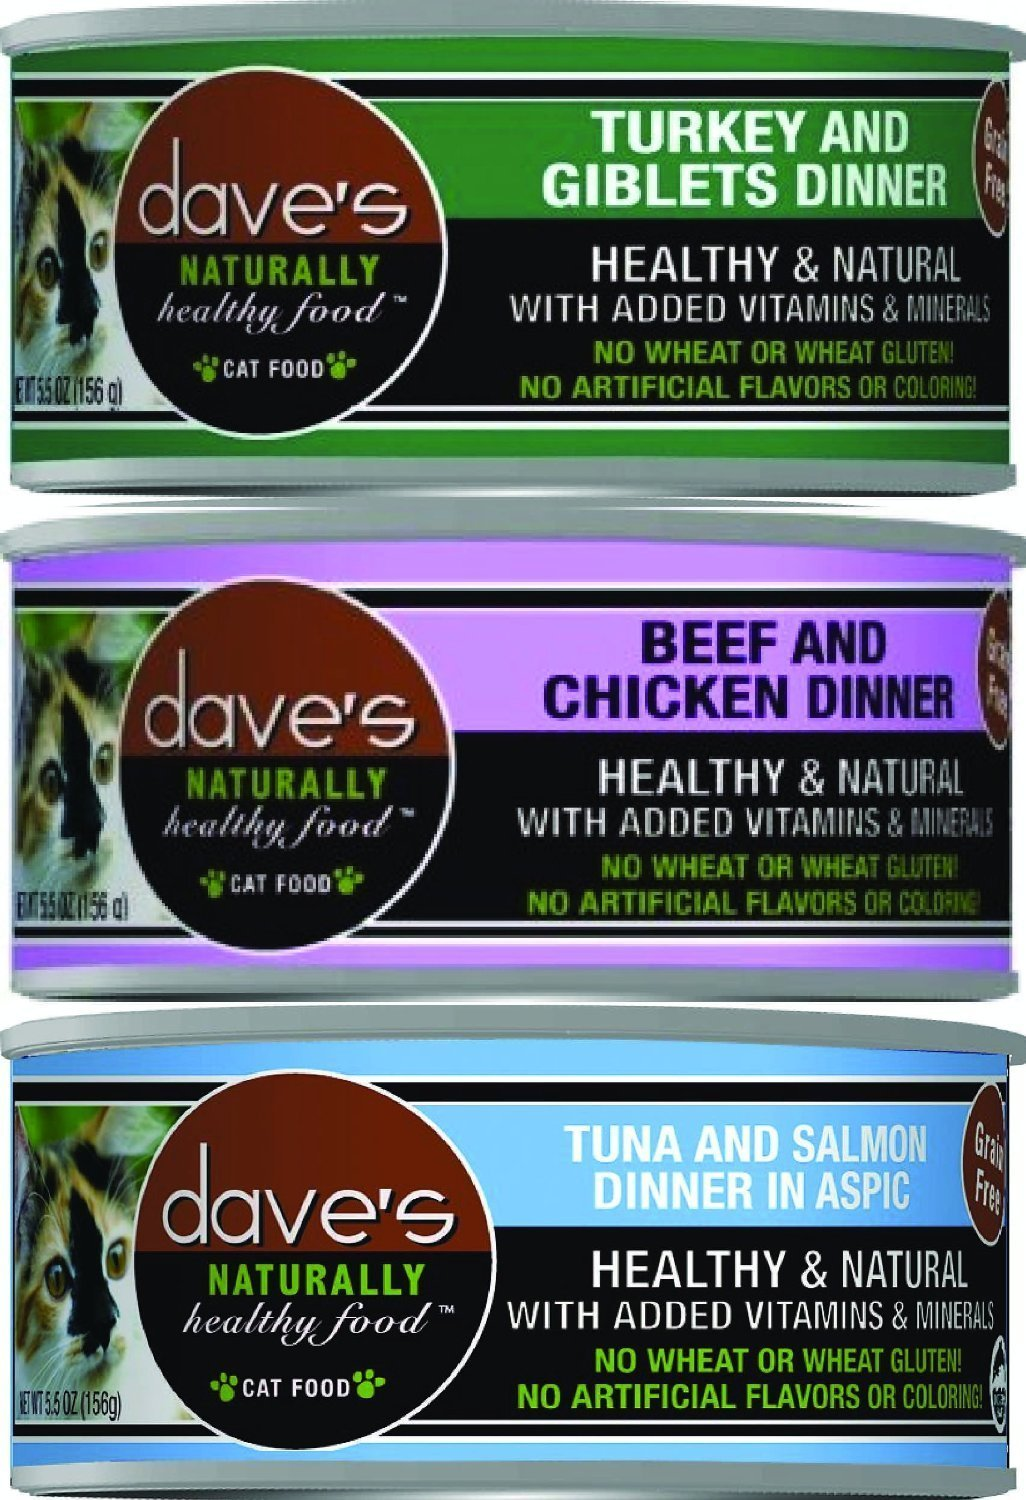 (24 Pack) Dave's Pet Food Naturally Healthy Grain-Free Canned Cat Food Mixed Tuna and Salmon, Beef and Chicken, Turkey and Giblets 5.5 Ounces Each by Dave's Gourmet